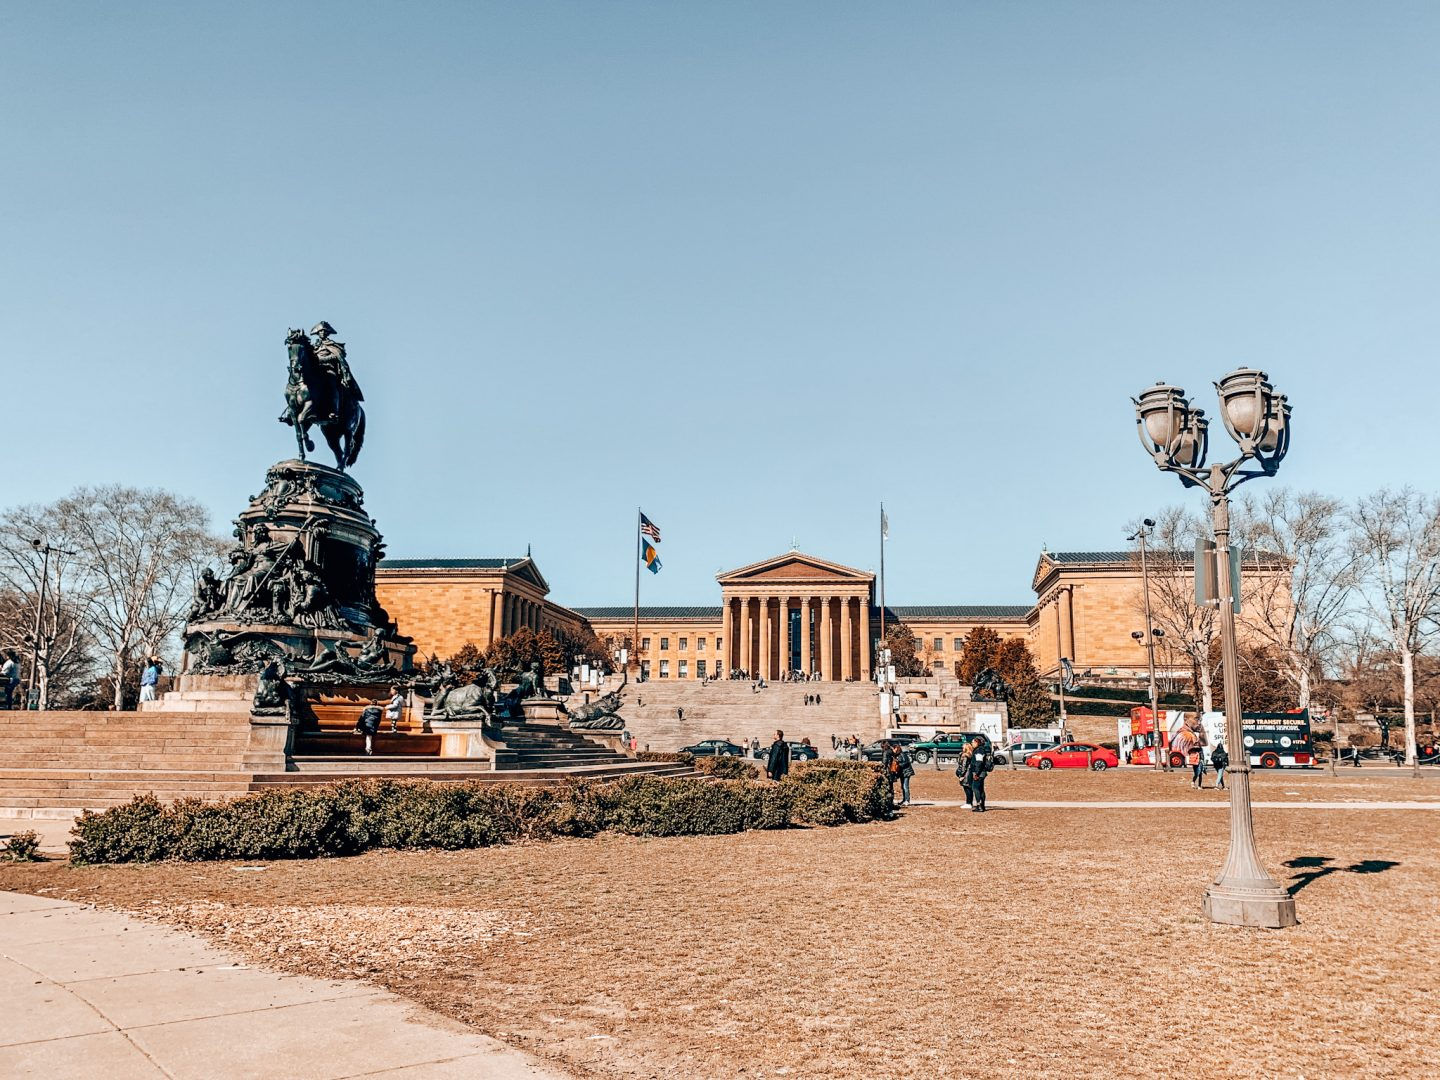 Philadelphia's Museum of Art